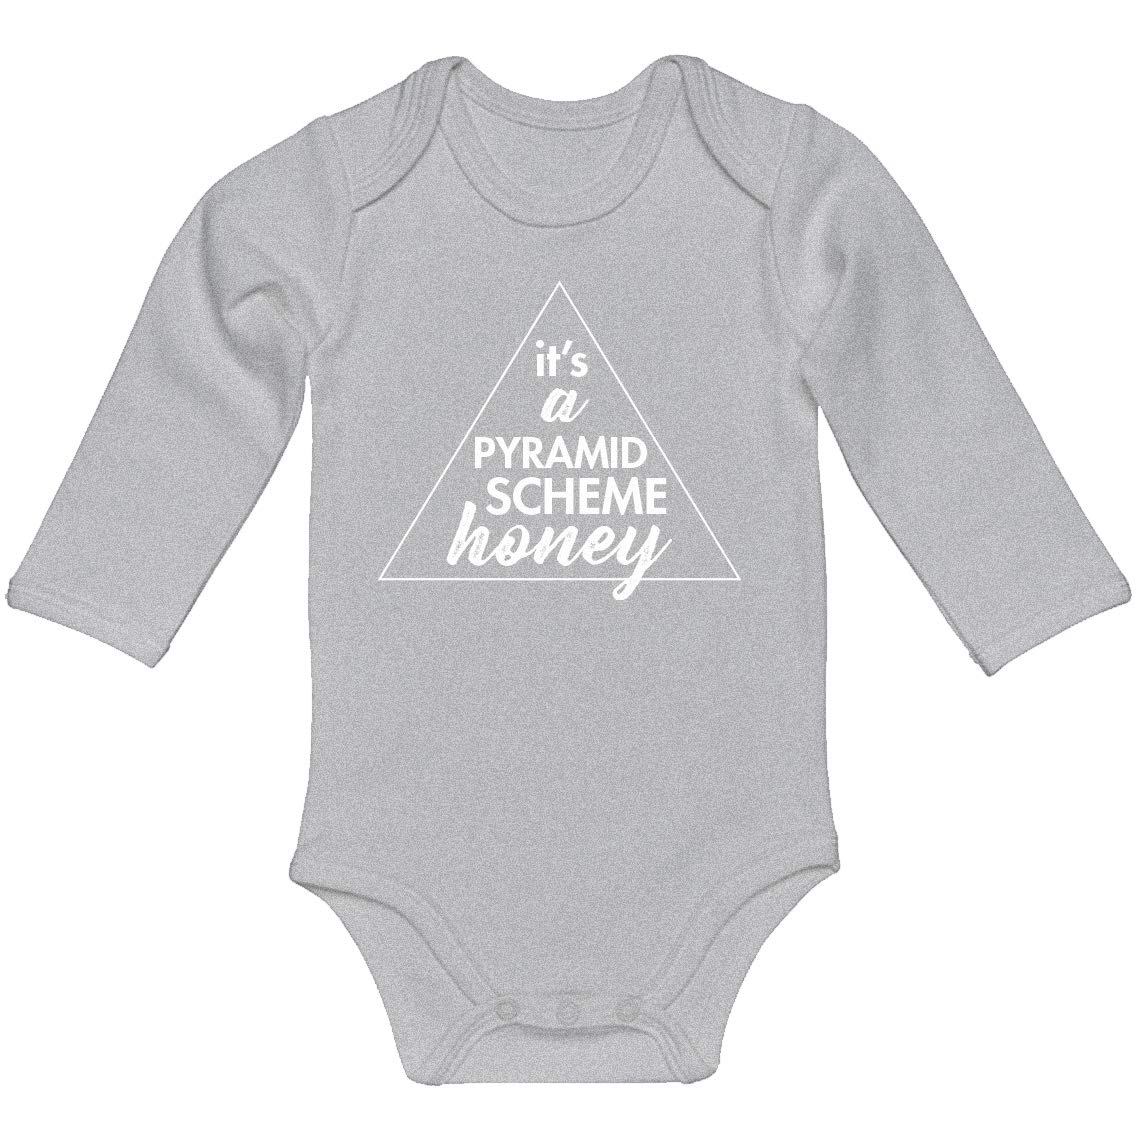 Baby Romper Its a Pyramid Scheme Honey 100/% Cotton Long Sleeve Infant Bodysuit